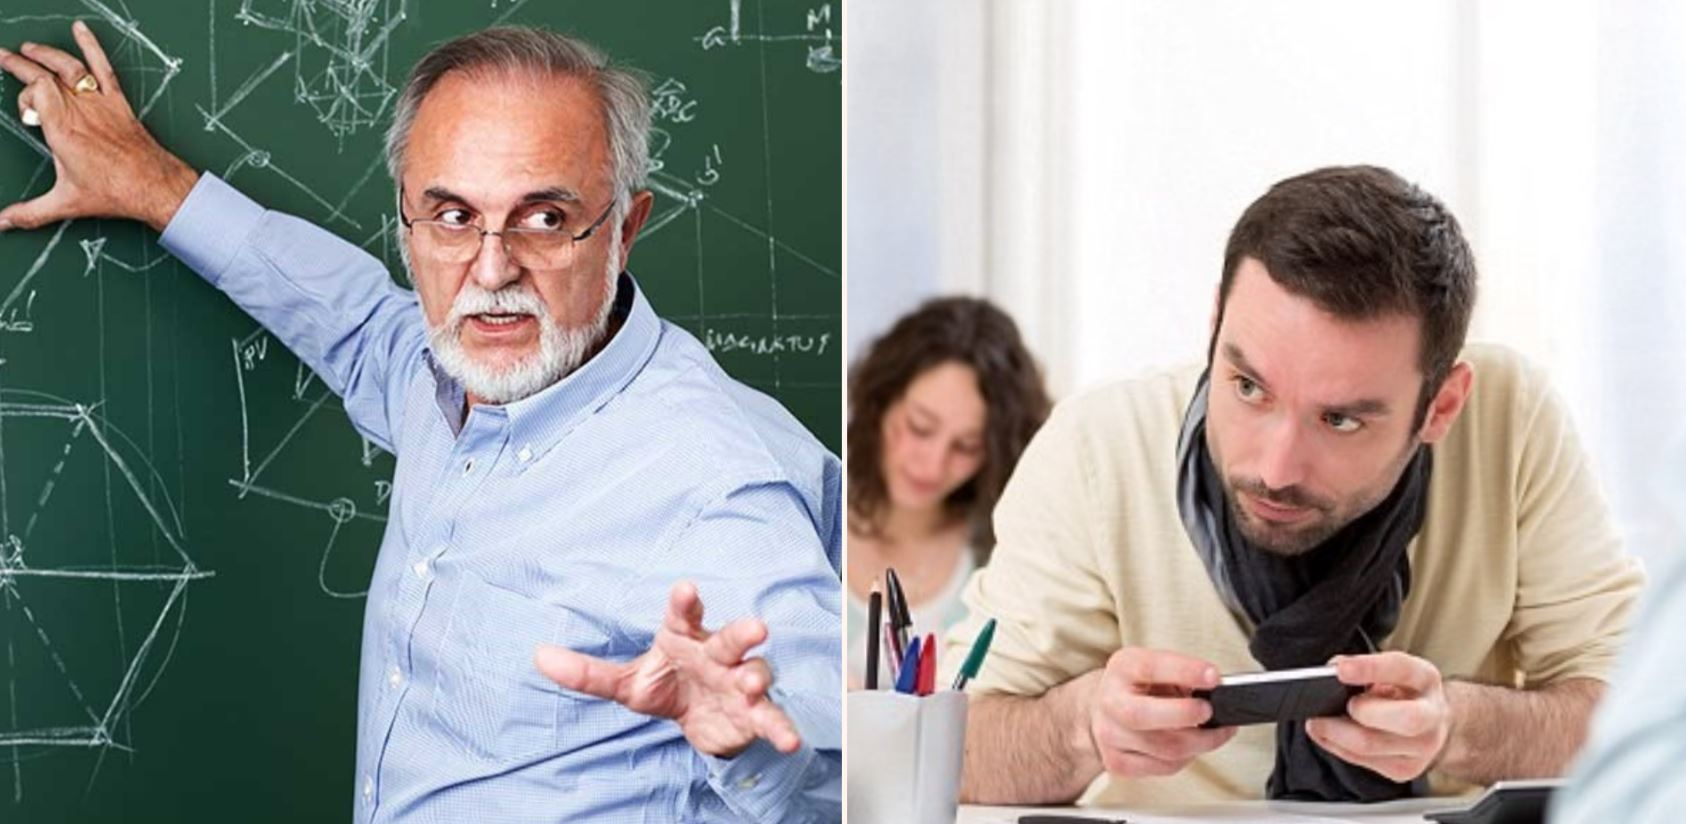 Teacher creates cheeky exam question to find cheaters and catches 14 students